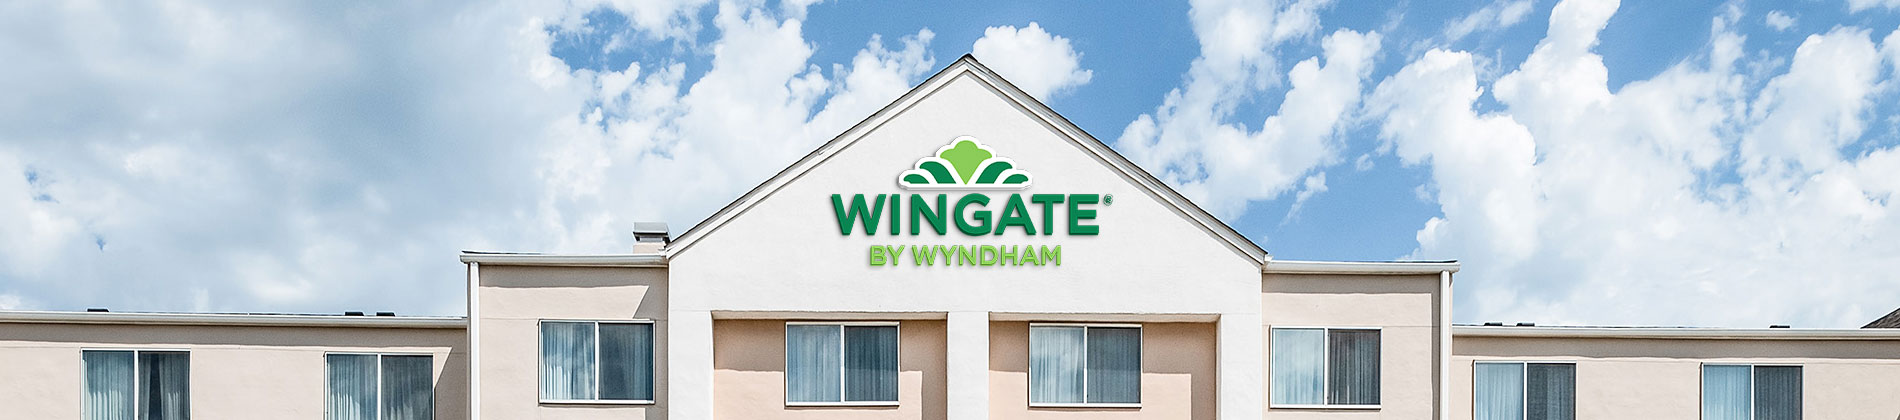 Exterior of the Wingate Minot with the sign visible